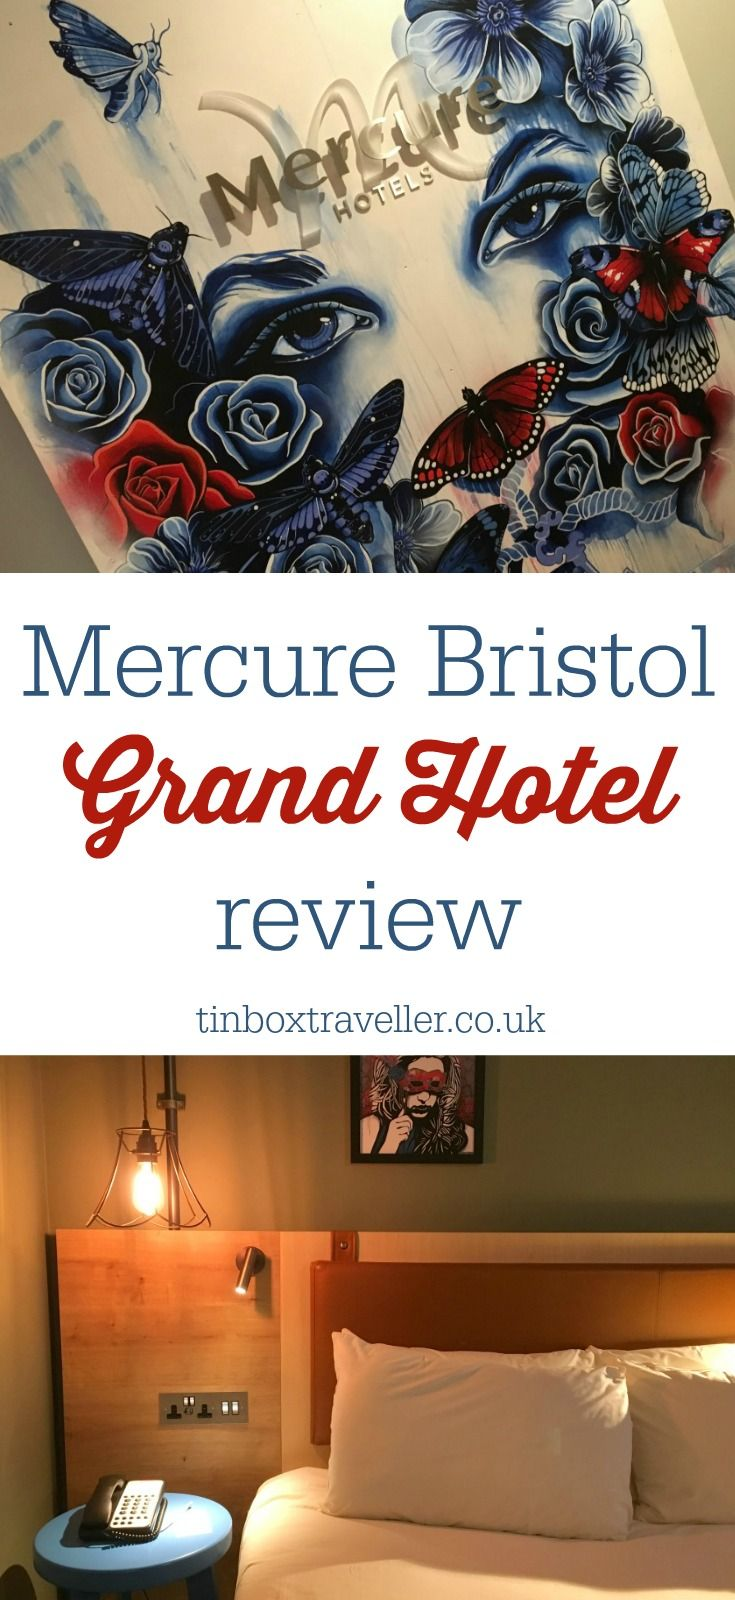 A short stay at the Mercure Bristol Grand Hotel reviewed. Plus some ideas for things to do and places to eat during a longer city break in Bristol